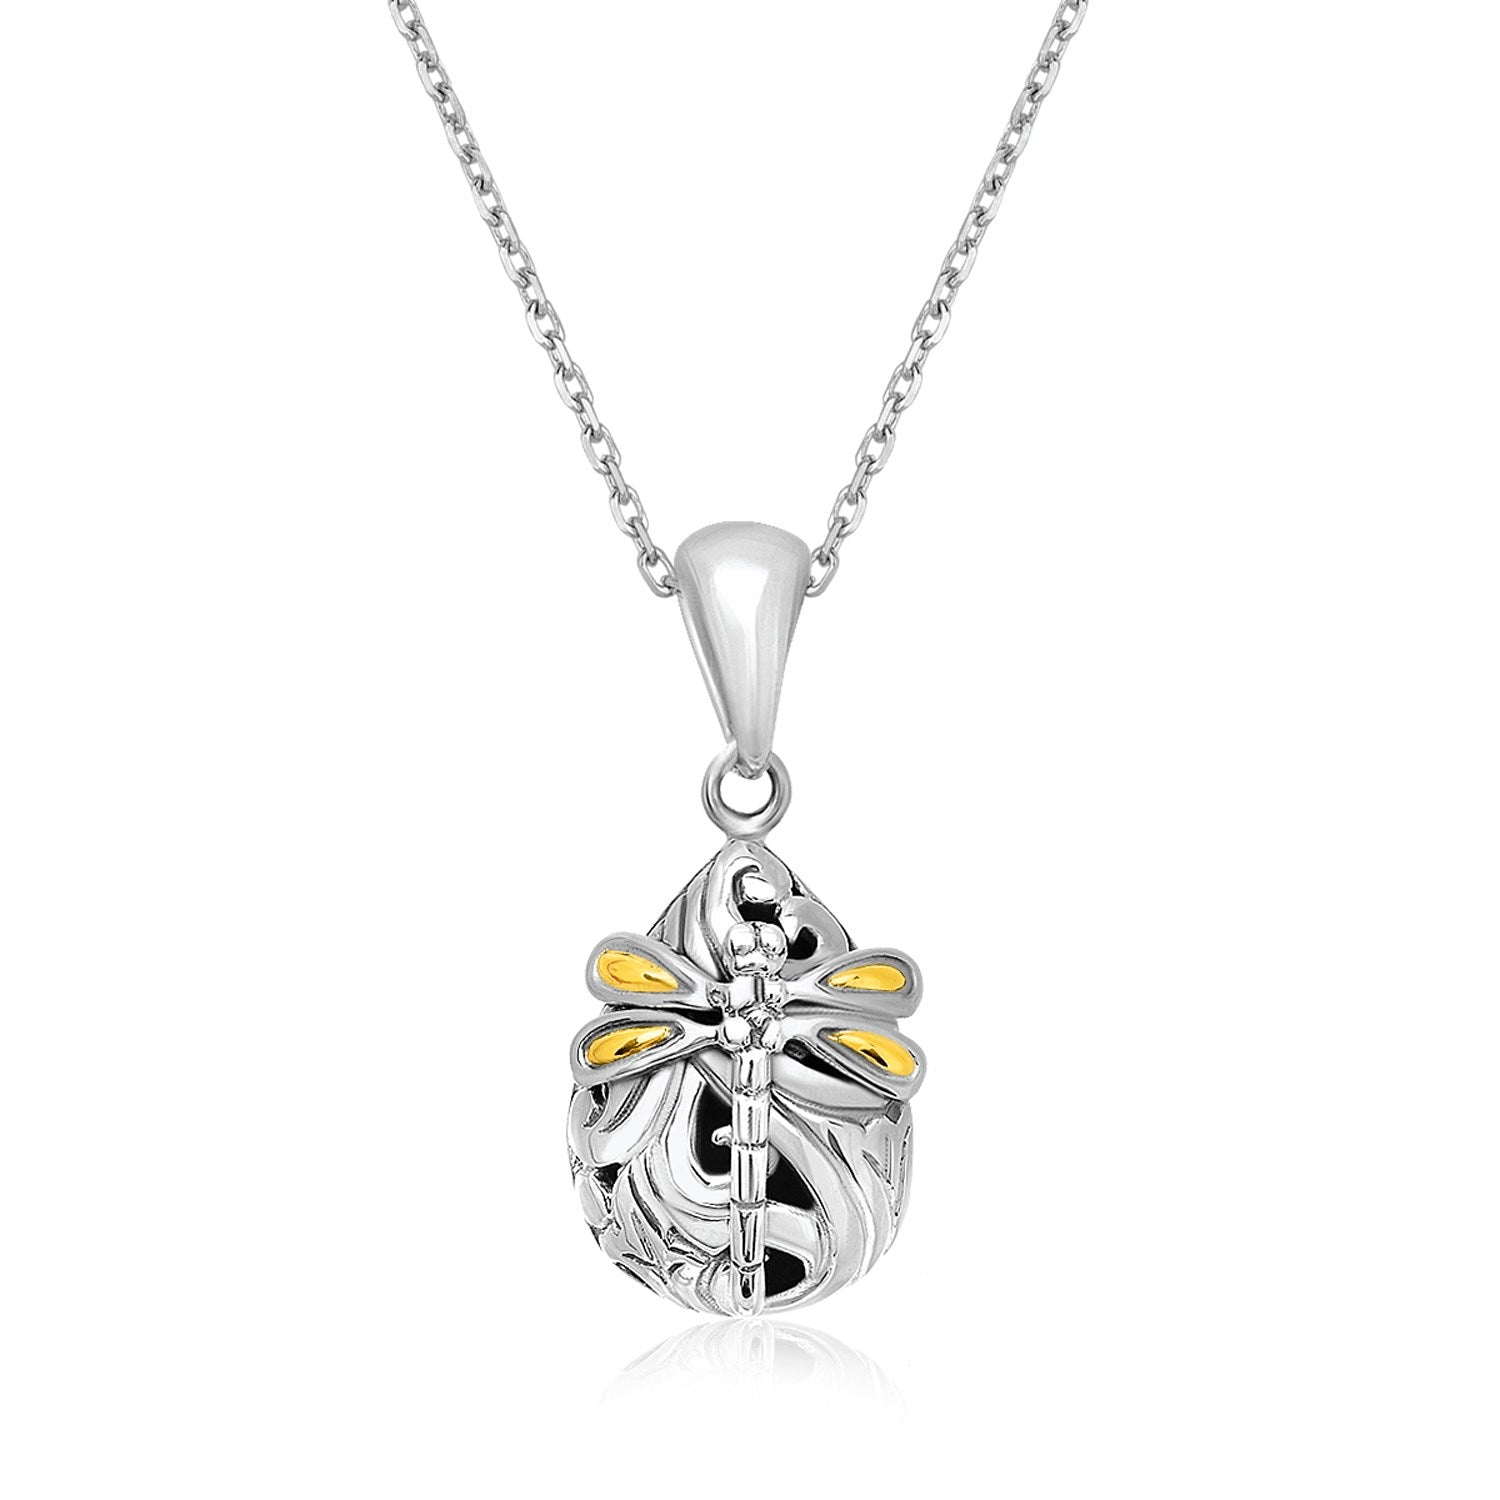 Distinctive Luxury London Style 18K Yellow Gold & Sterling Silver Dragonfly Motif Baroque Pendant